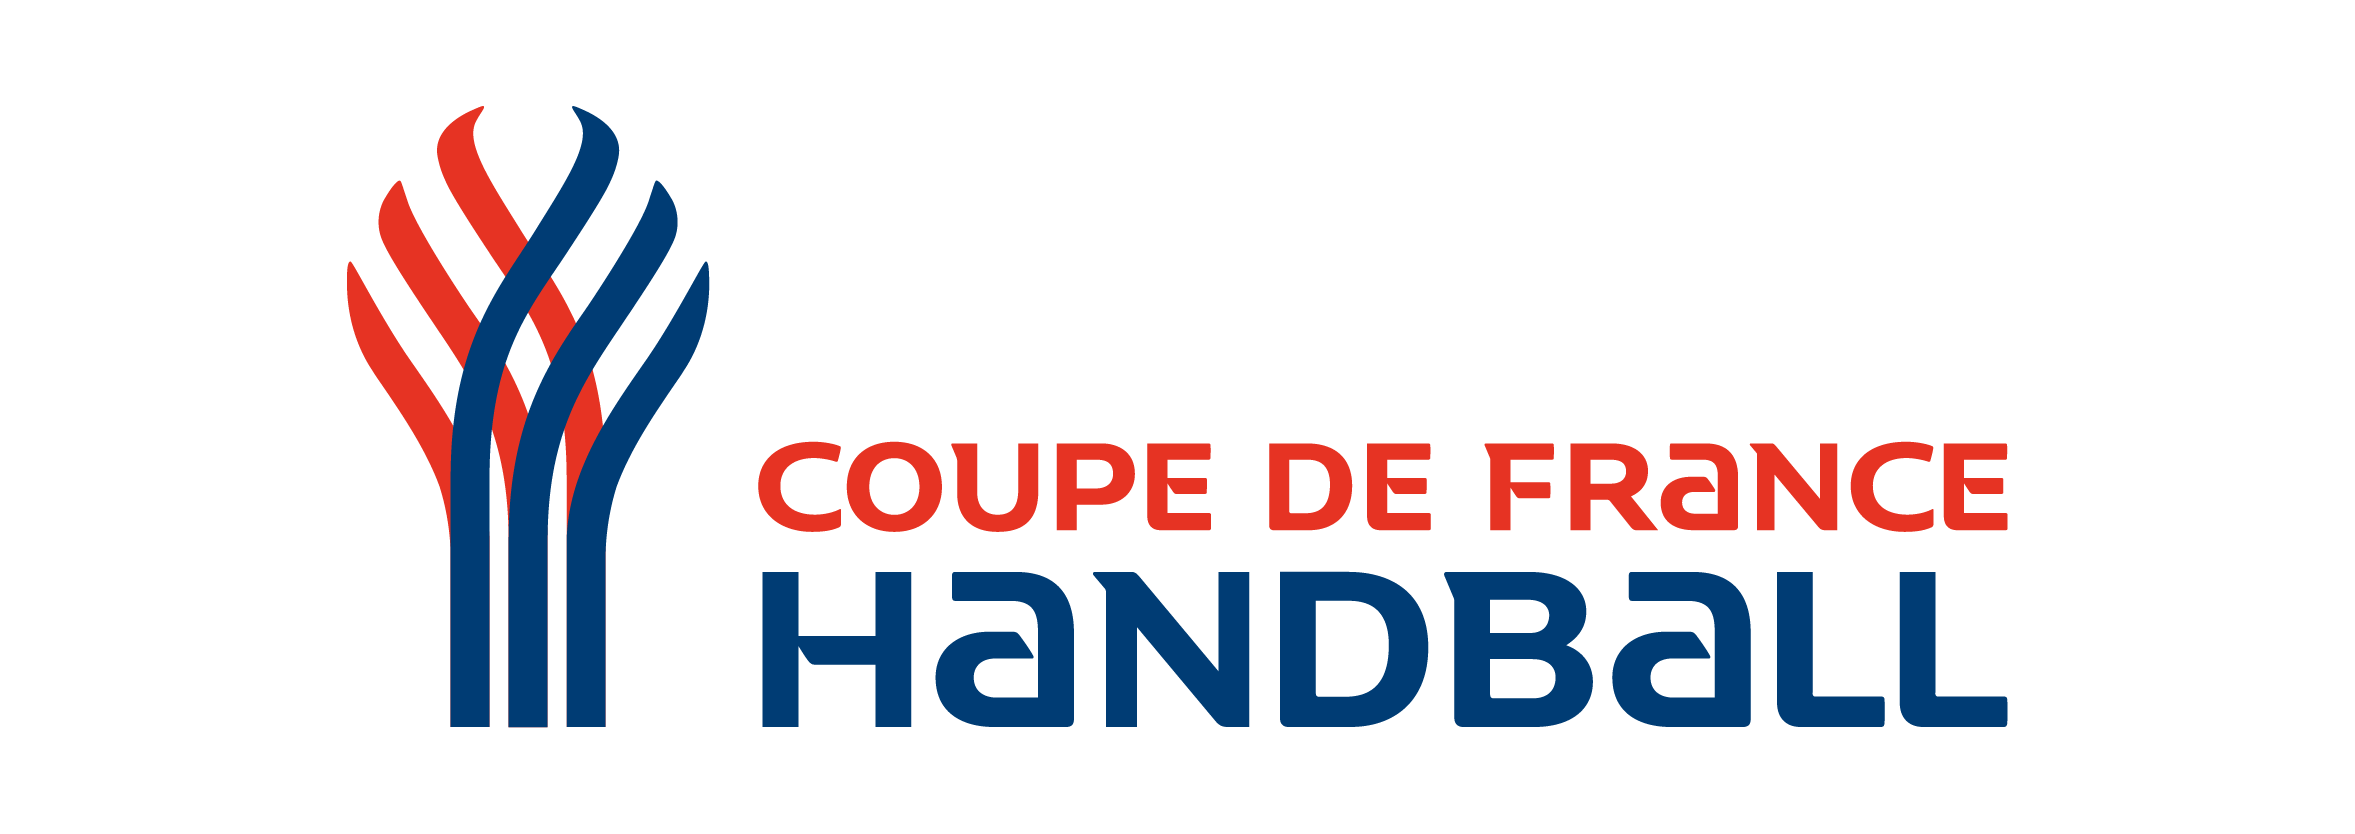 Coupe de France Régionale